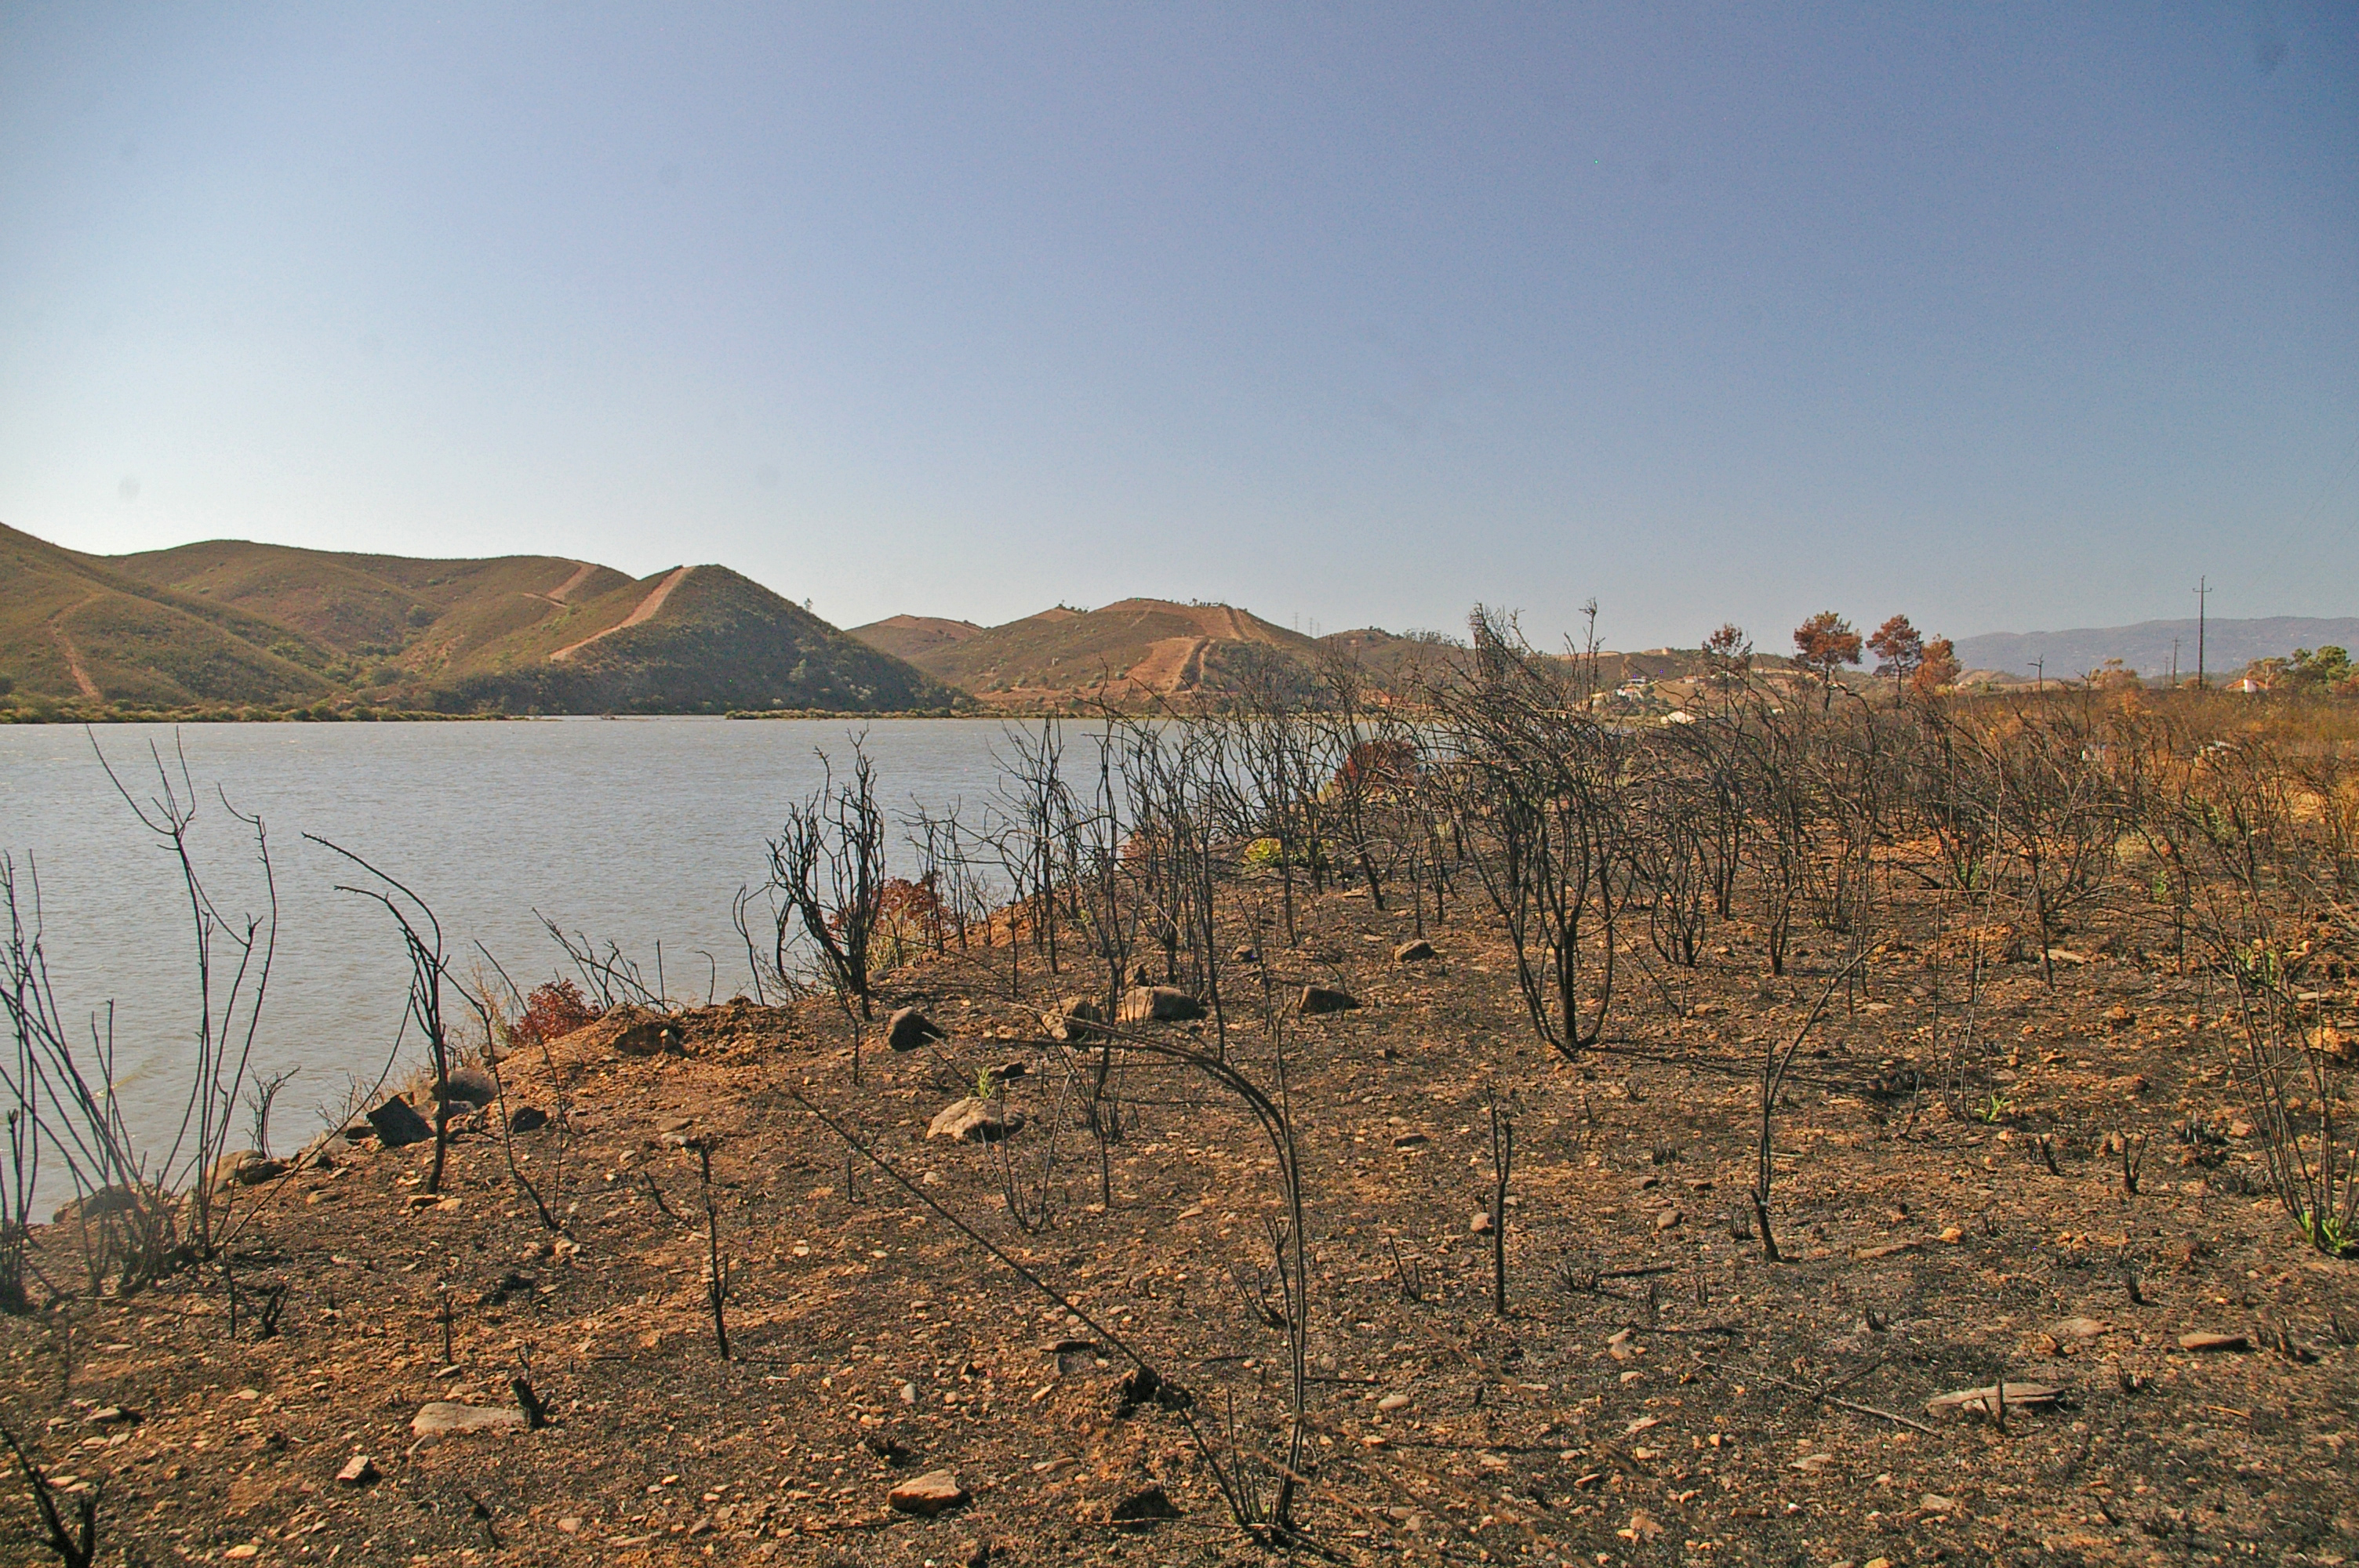 An apiary destroyed by the wildfires near Silves, Algarve, Portugal